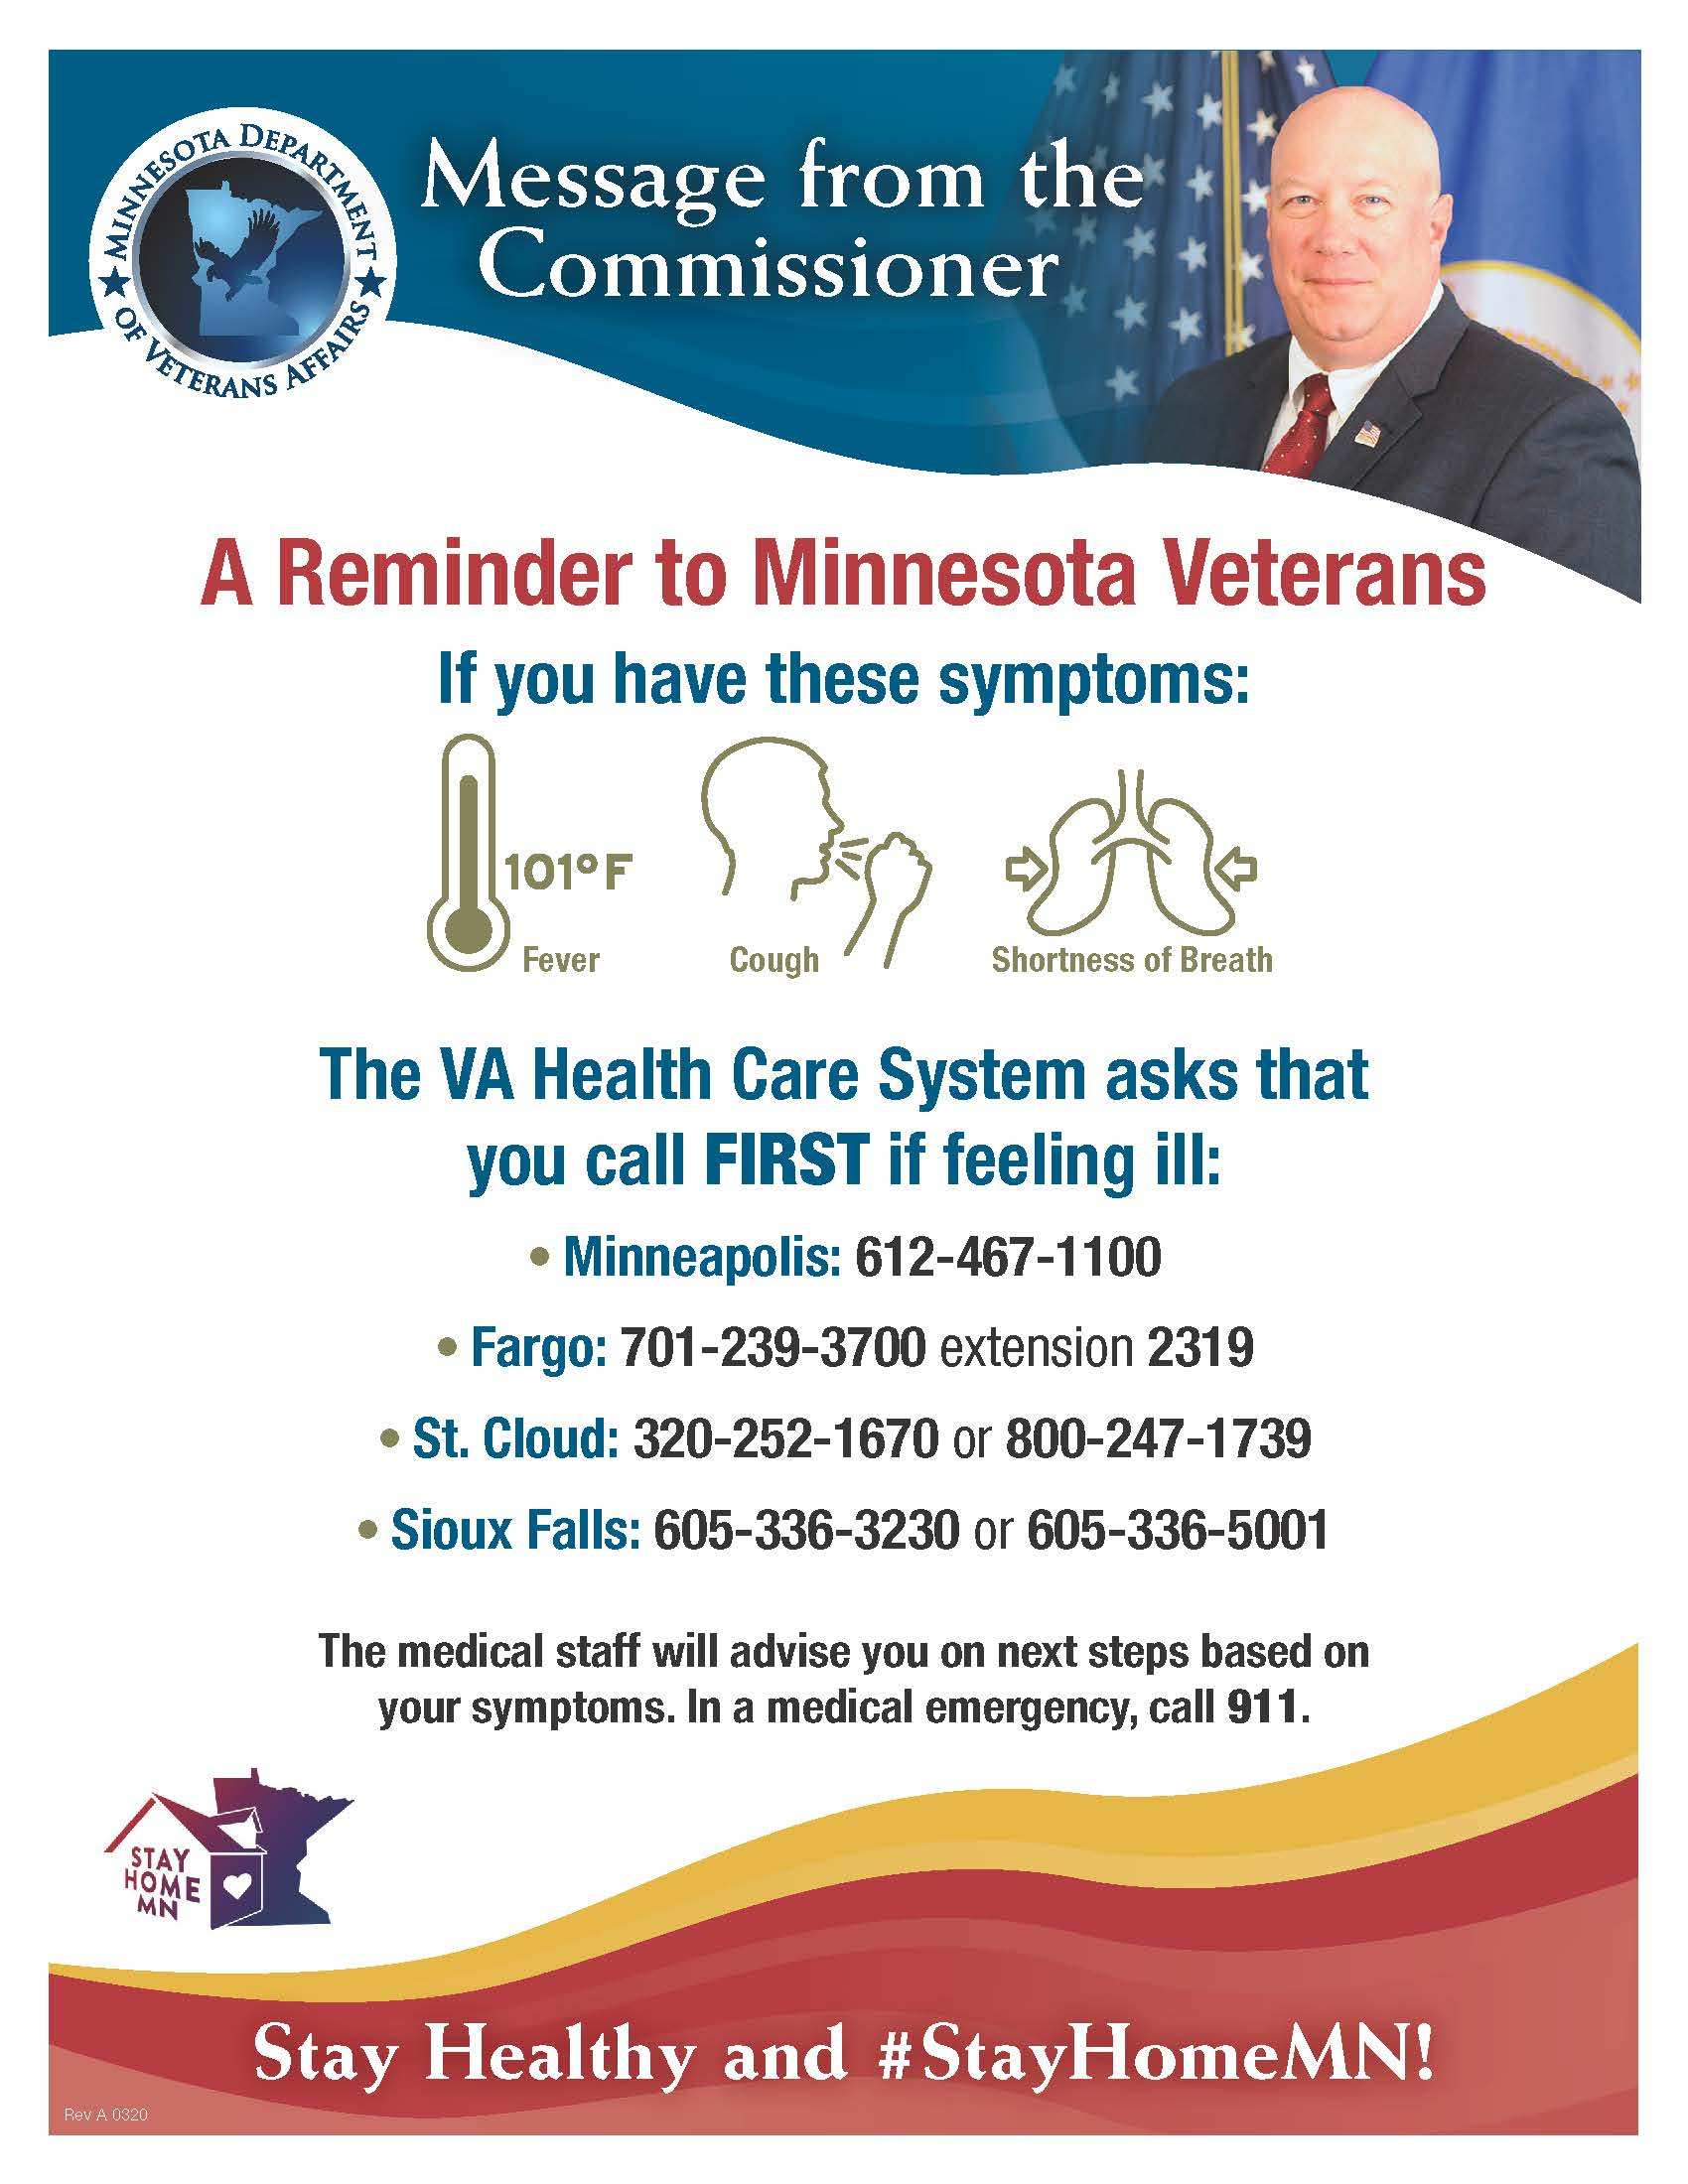 MN_Vets_Seeking_Healthcare_During_COVID-19_3.30.20